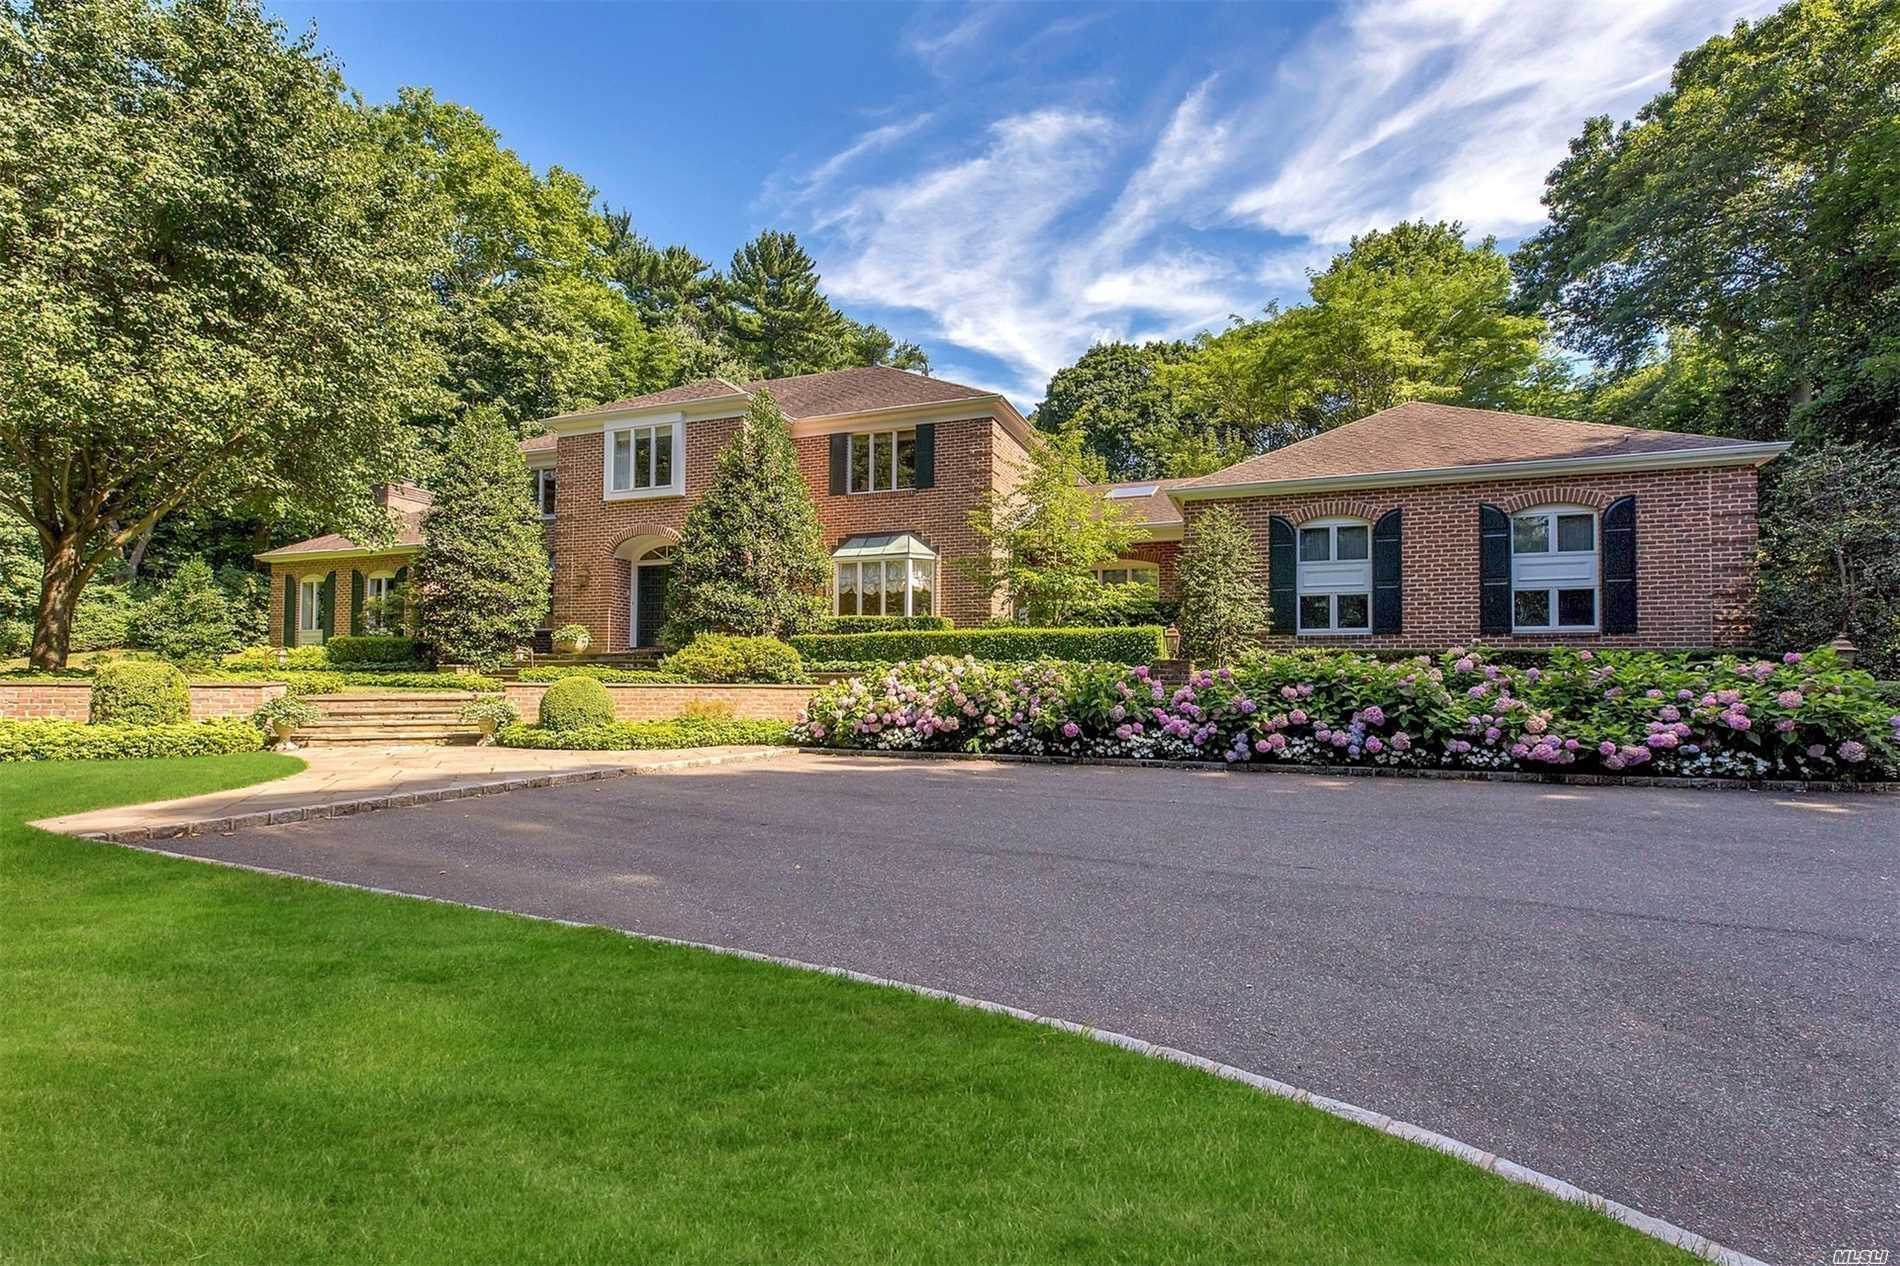 Extraordinary Value! Quietly Set Back This Majestic 7 Bdrm Brick Colonial Displays Luxuriously Proportioned Rooms & Majestic 2 Story Foyer. Master Suite Offers Spacious Office. Sep Guest Wing W/ 3 Bdrms & 2 Baths Perfect For Extended Family. Magnificent Pool & Trellised Cabana Features Add'l Kitchen & Bath. Set On 2+ Acres Of Spectacular Landscaped Grounds. Special Features Incld Media Rm & Wine Cellar, 3 Car Garage, Generator & Driveway W/Heating Coils. Jericho Schools. Listening To All Offers.